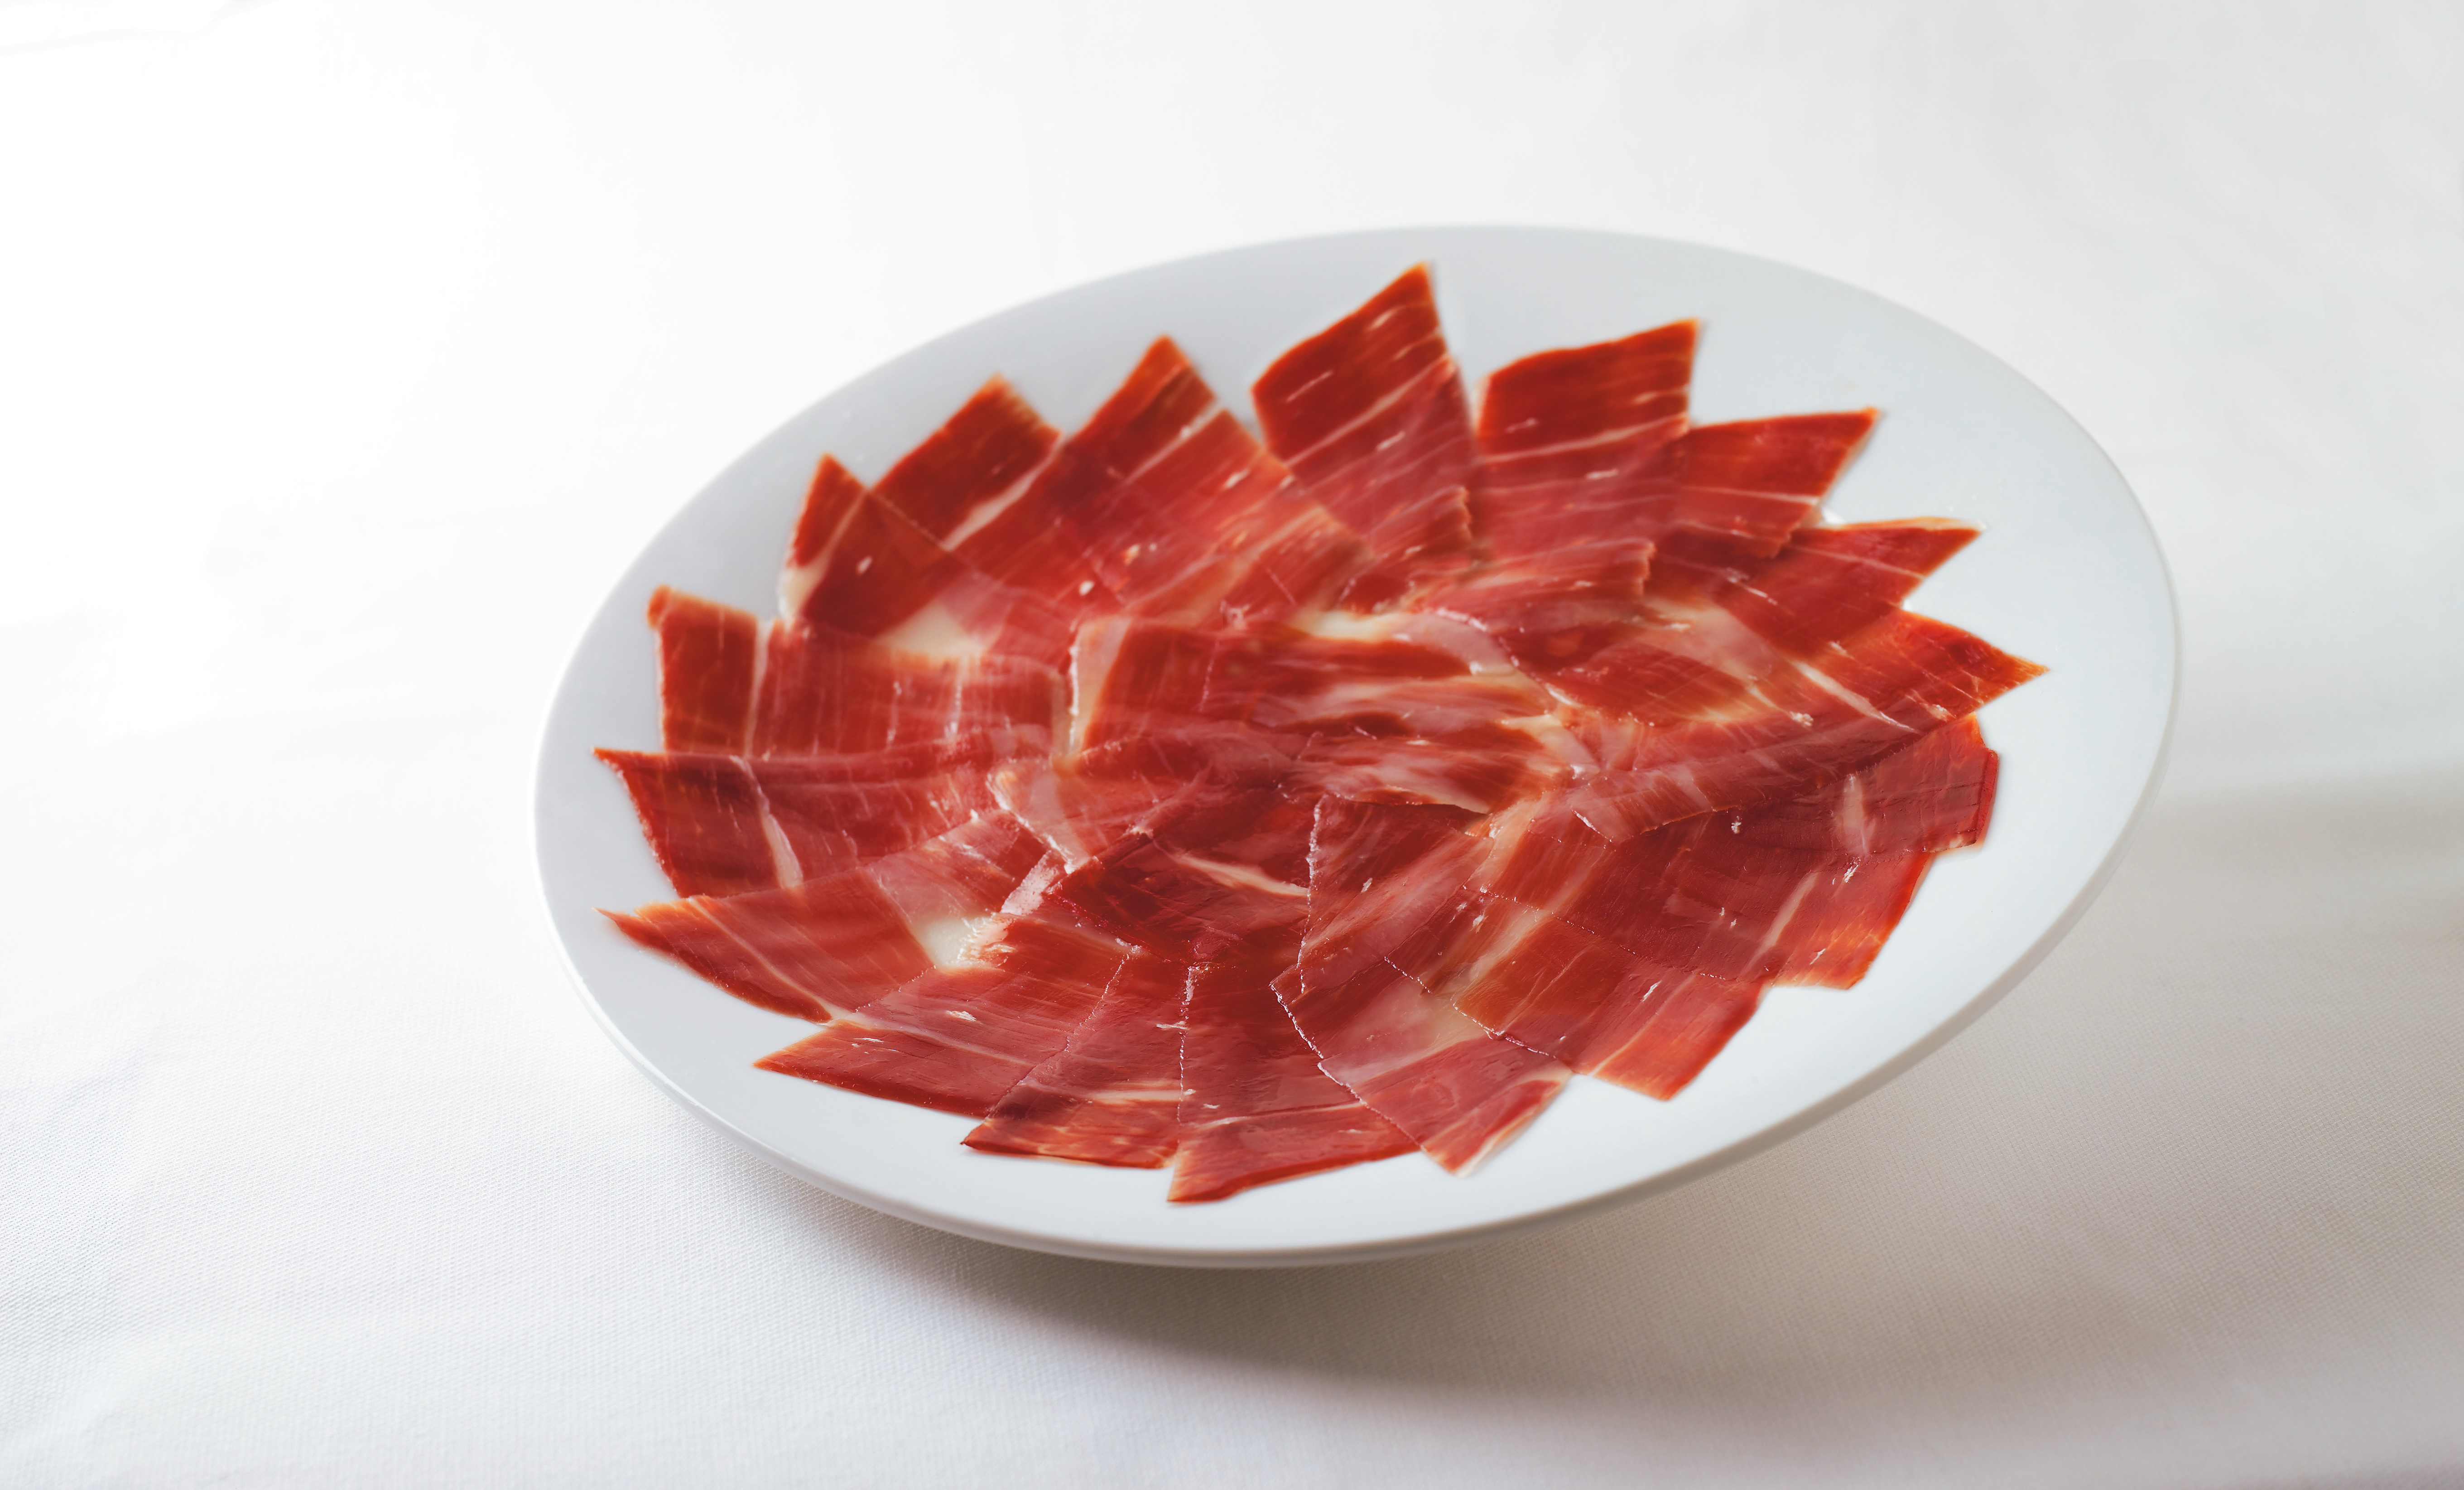 Cuts ham prosciutto and speck berkshire furthermore Antique Marquetry Centre Table 3 7 Refno 2426 also 92872 Food Background Pattern further Max Greenfield Steve Howey Cover Wives Parade Sexy Bikini Bodies Beach Hawaii also Standing Leg Curl Purestrength 13. on ham leg